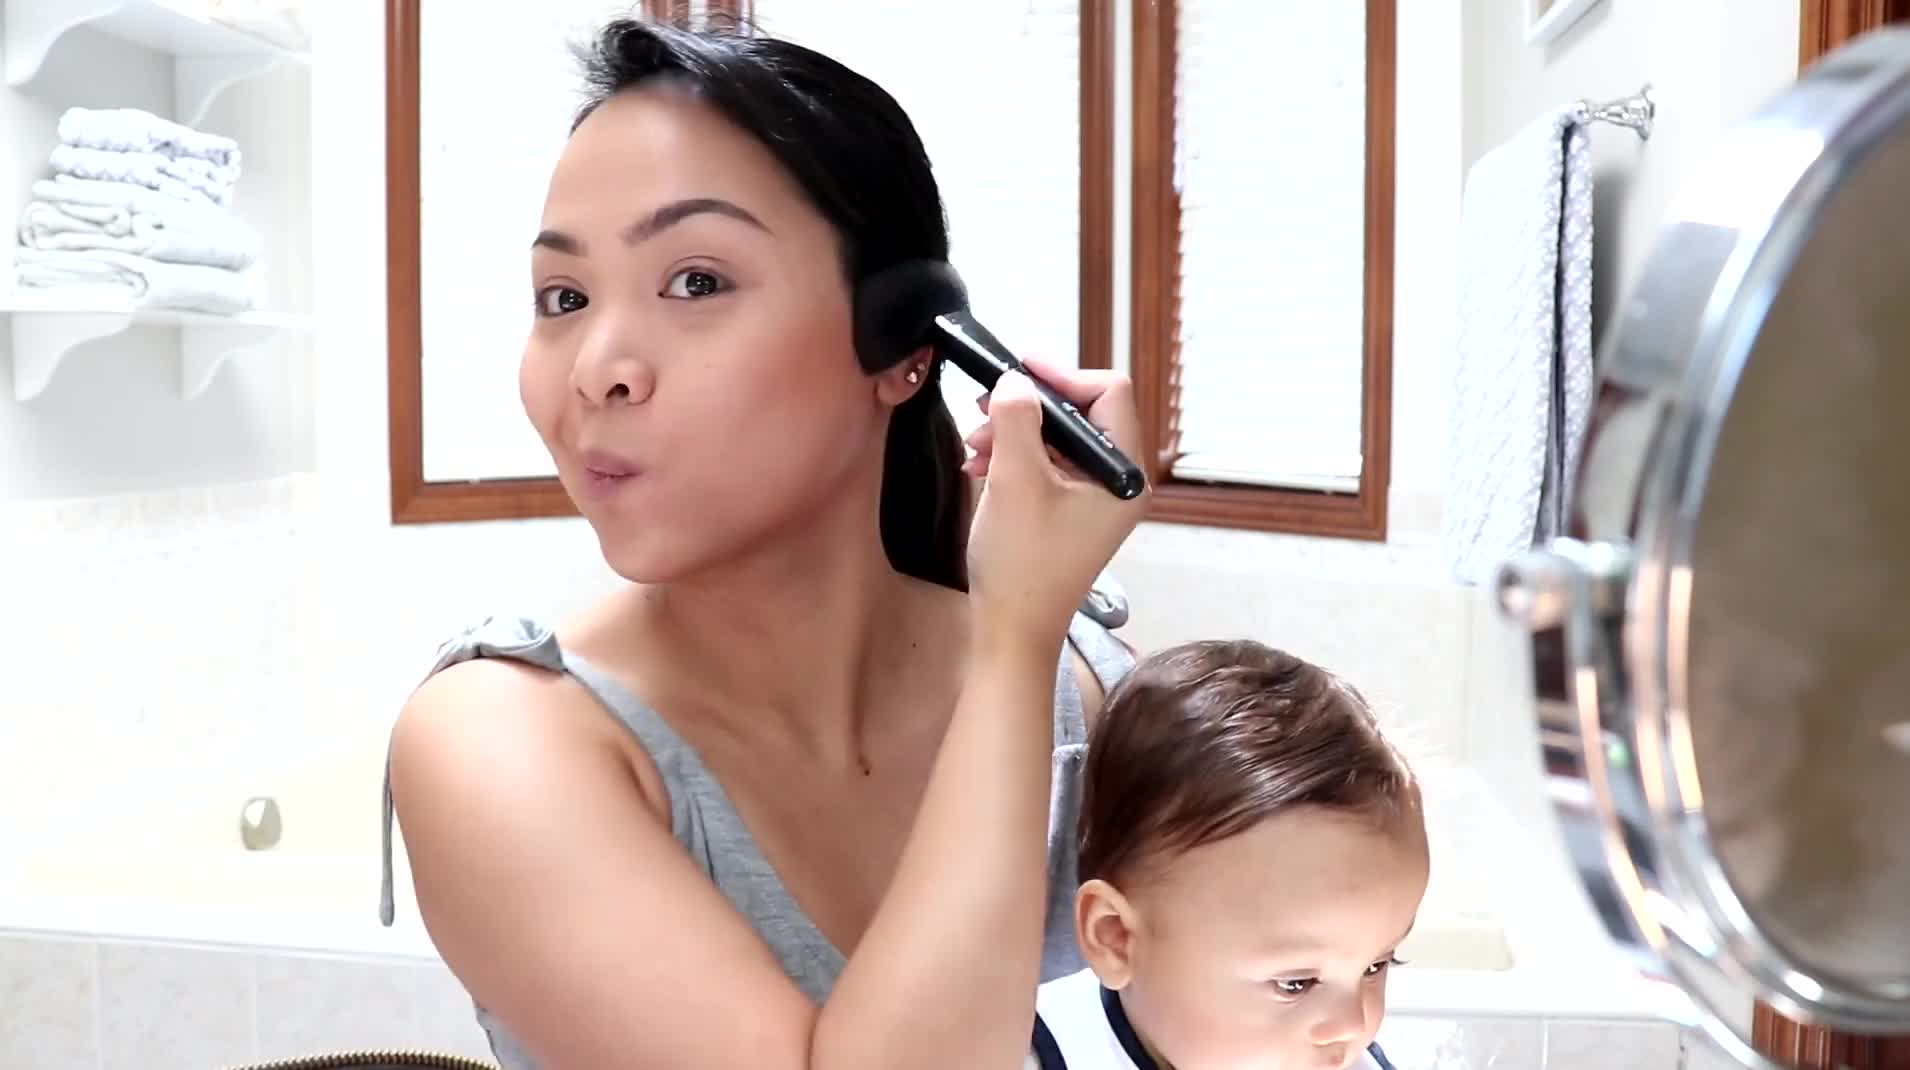 Get Ready With Me - Go To Makeup/Mommy Makeup (Talk Through)